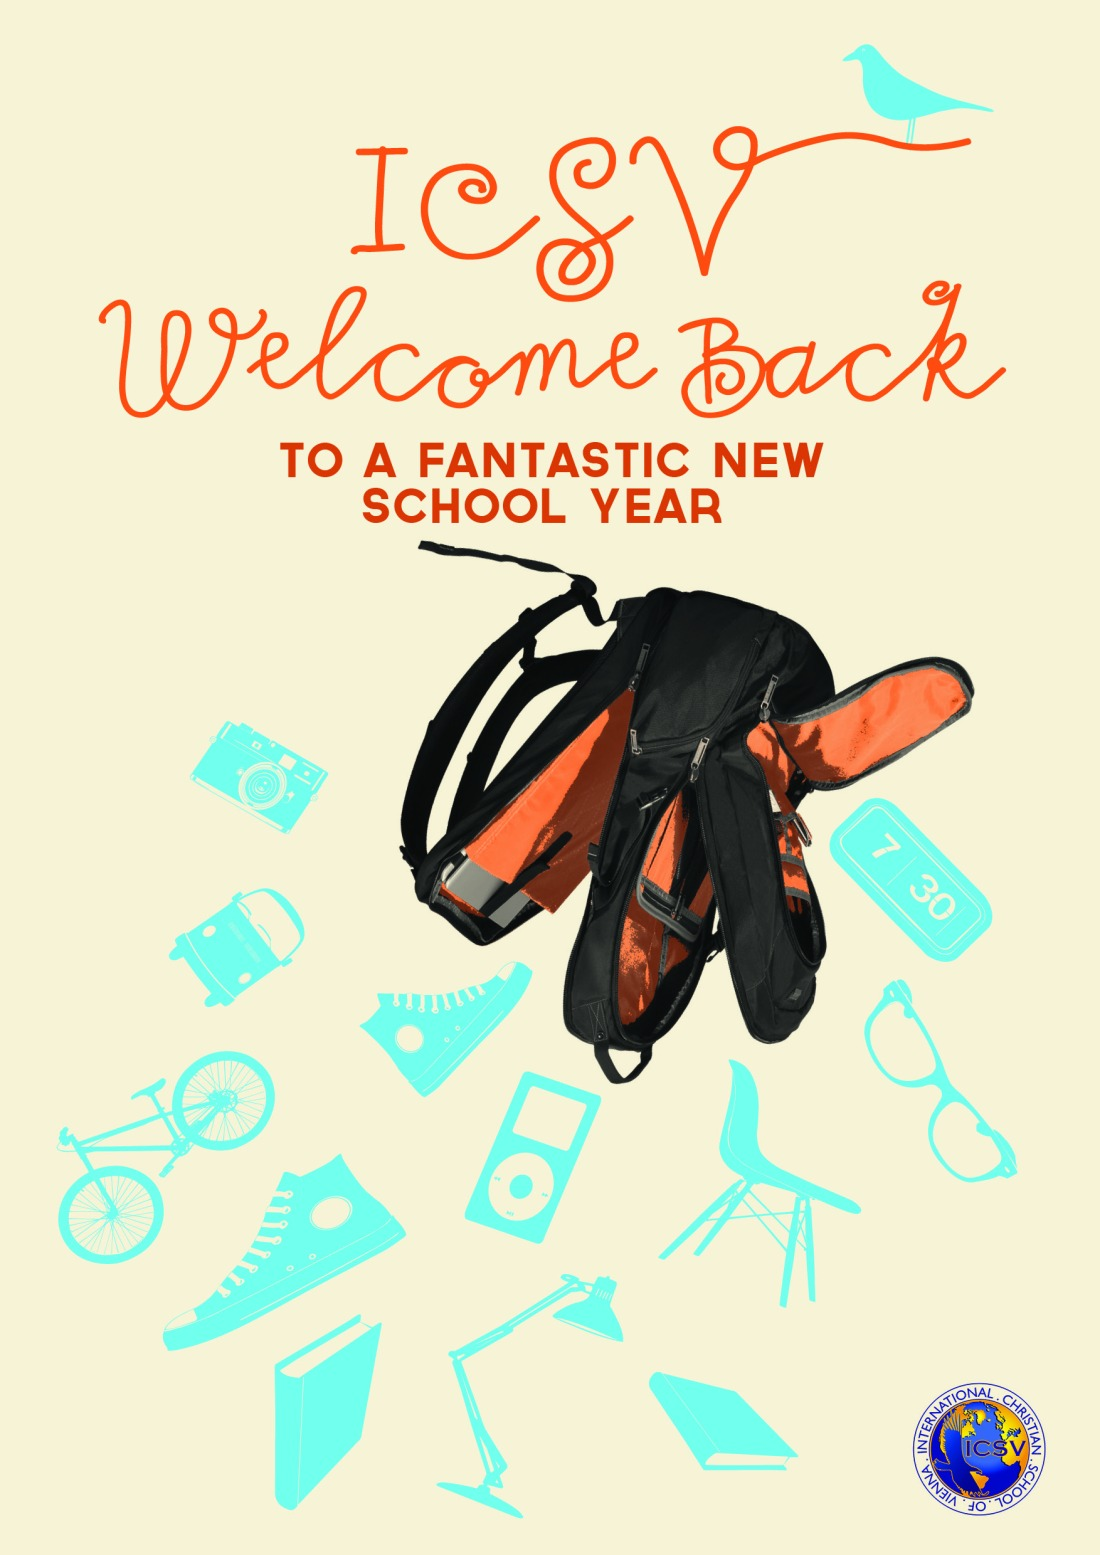 And another new poster ... Welcome Back to School